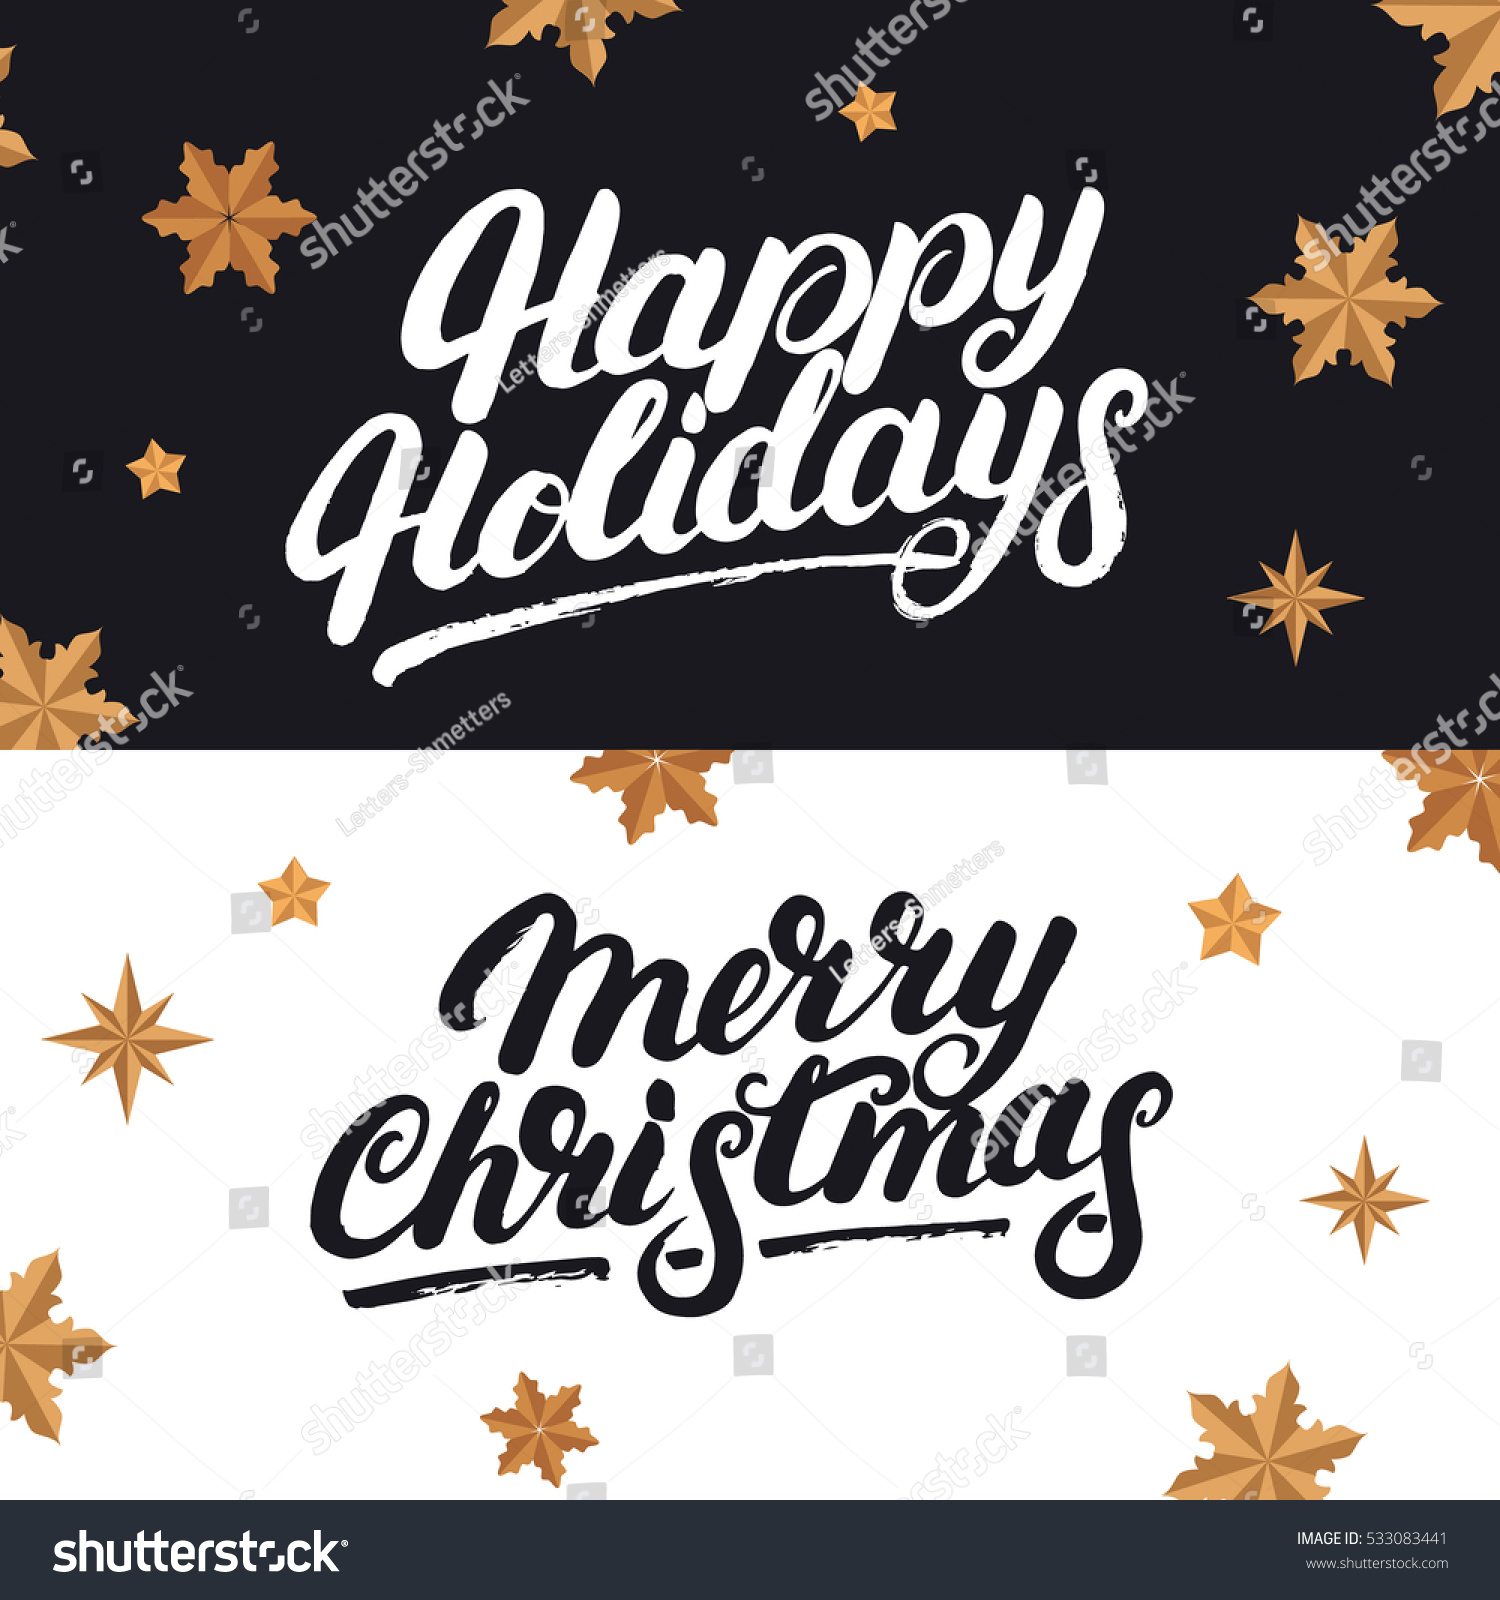 happy holidays and merry christmas hand drawn lettering and realistic stars calligraphy for cards and